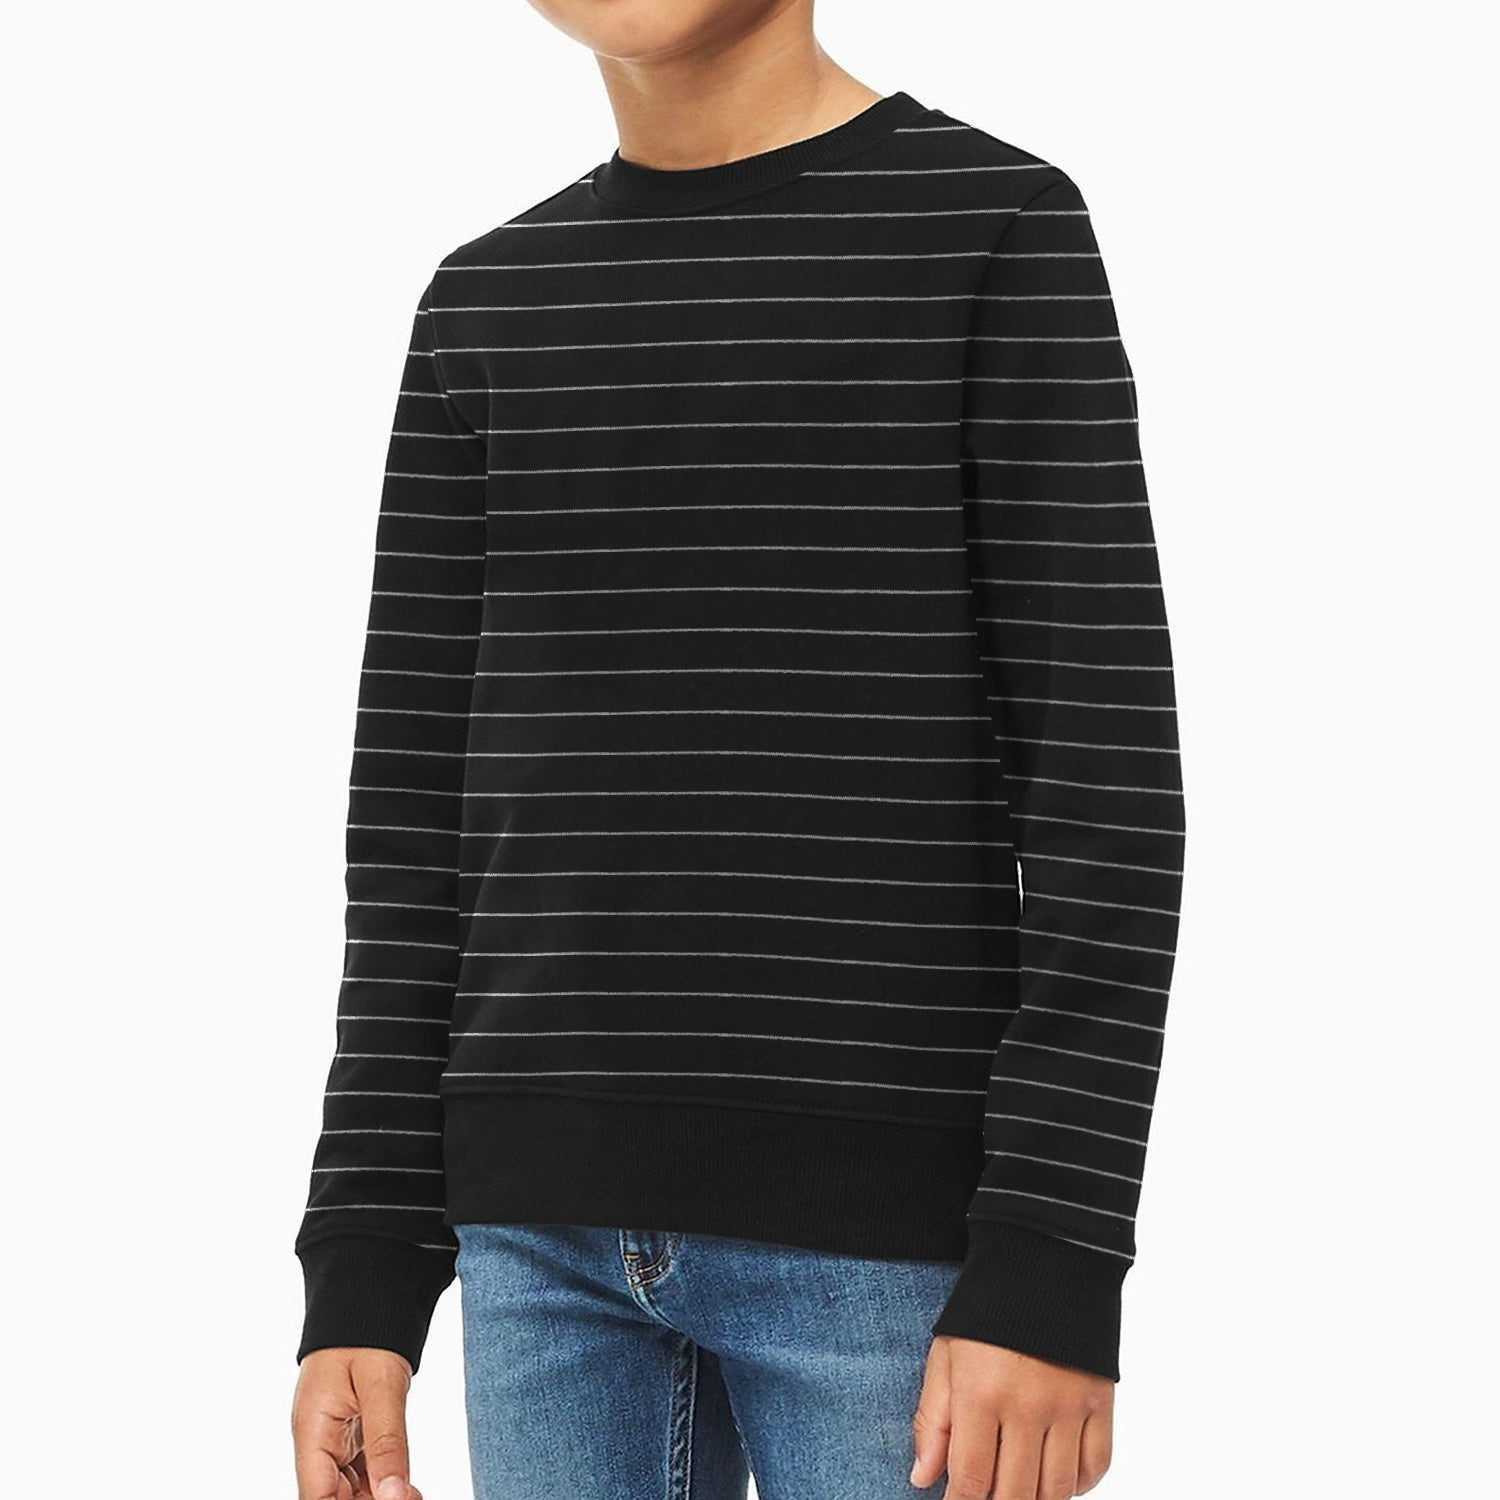 Mango Terry Fleece Sweatshirt For Kids-Black with White Lining-BE12806